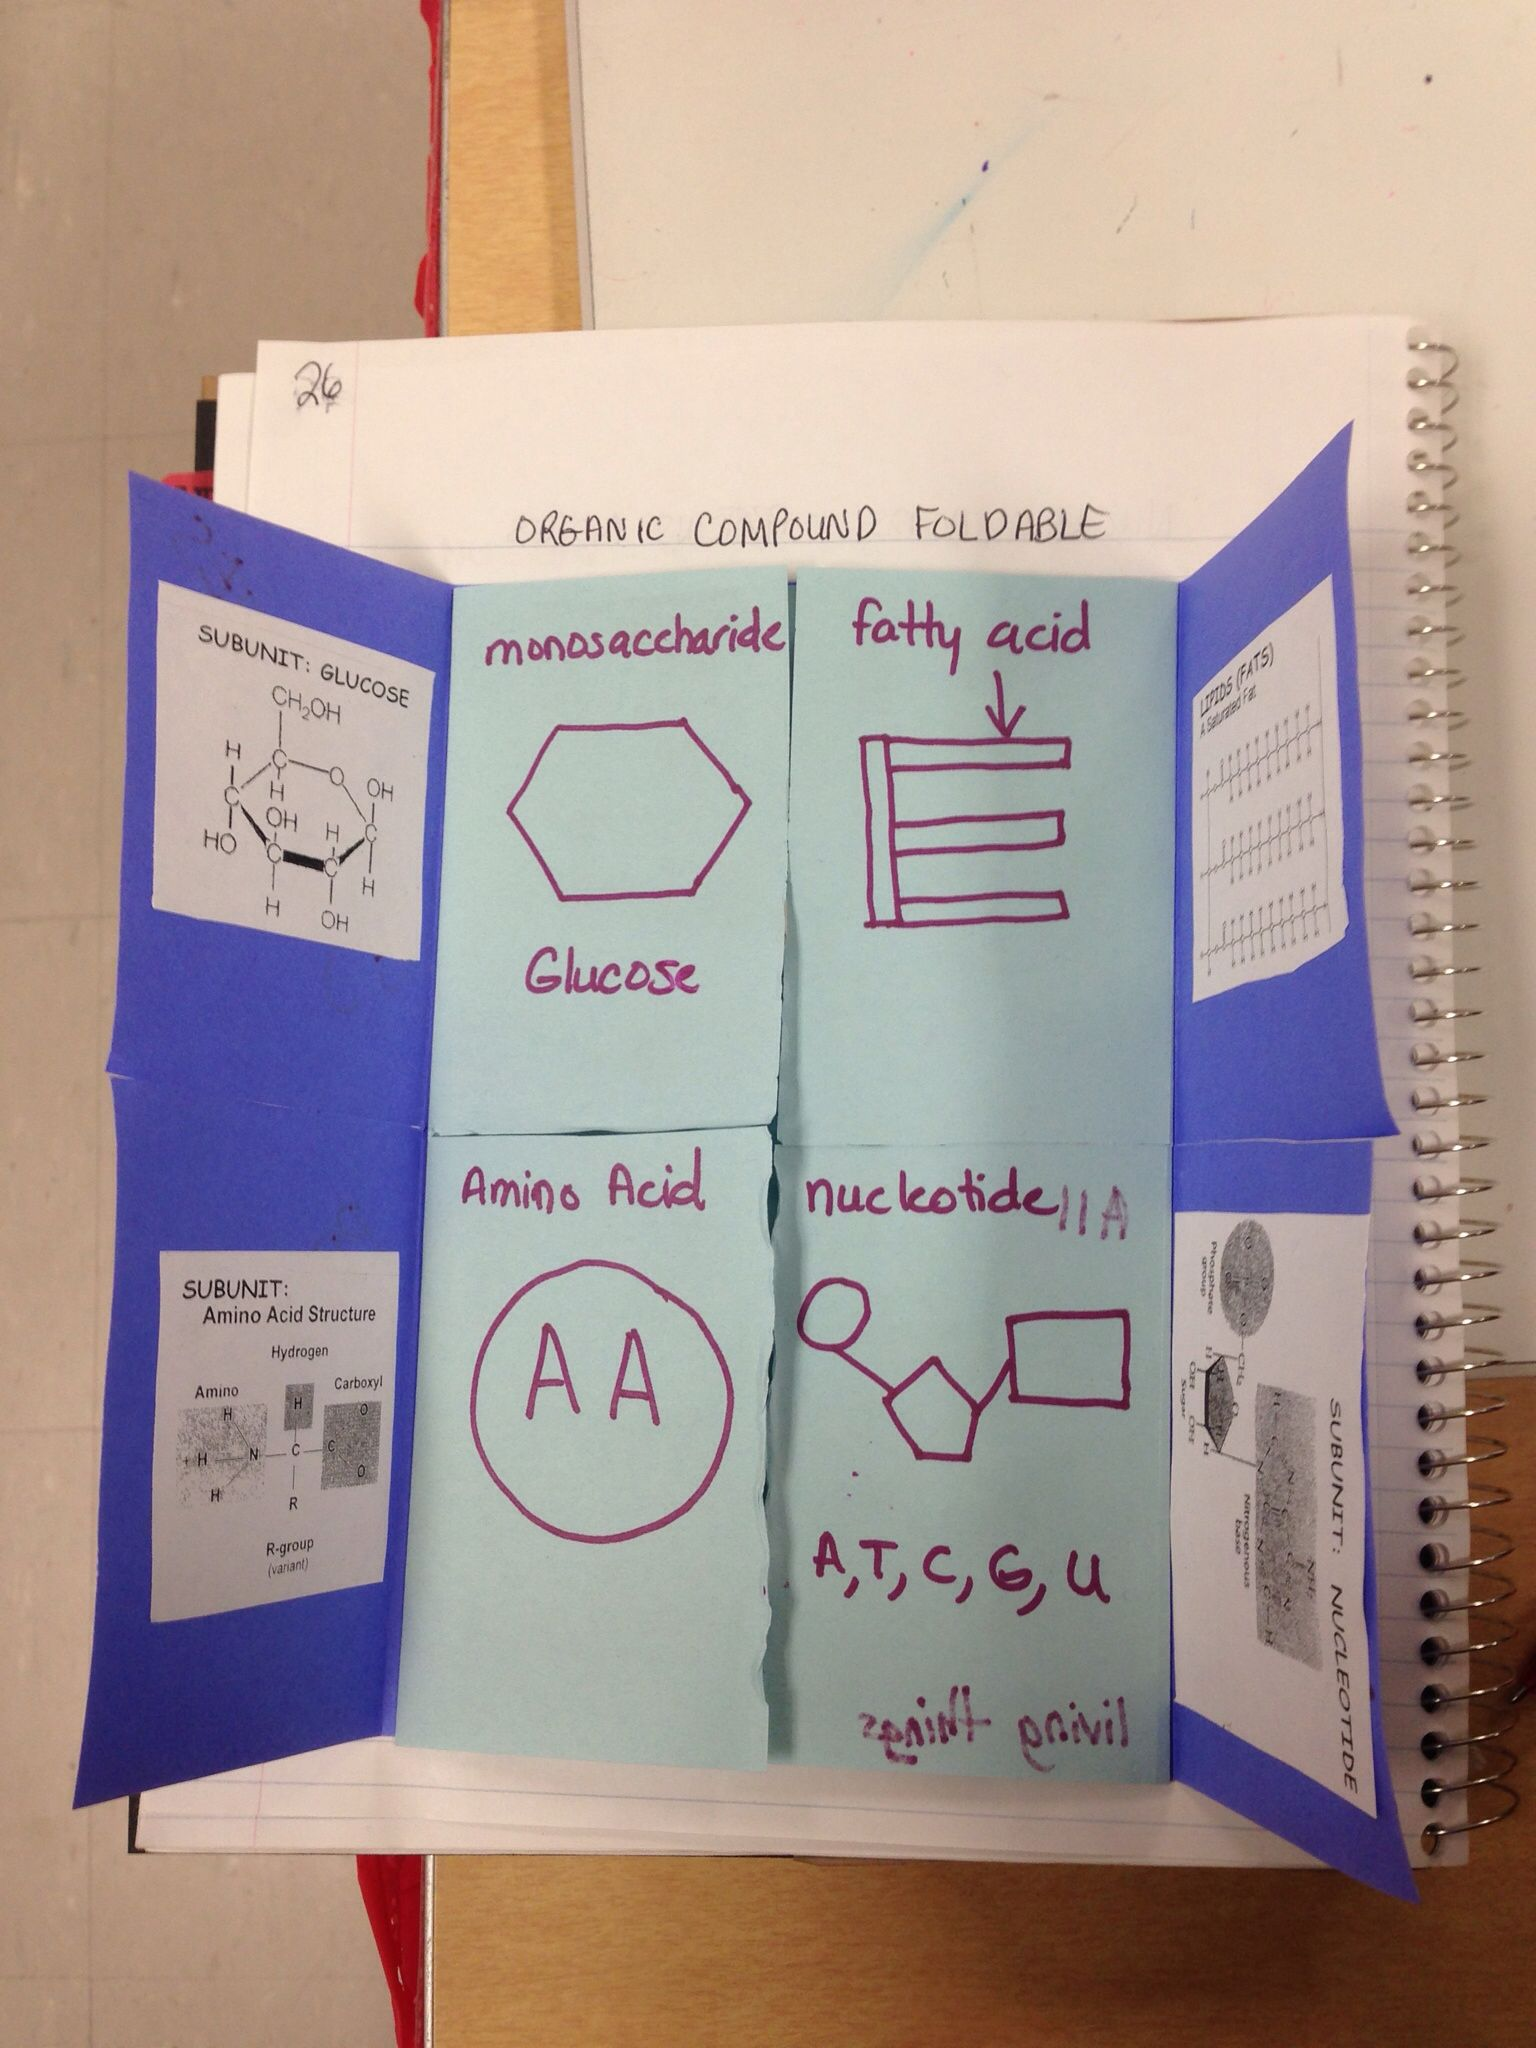 Organic Compounds Foldable My Biology Class Pinterest Introduction To 7400 Series Digital Logic Devices Fizix